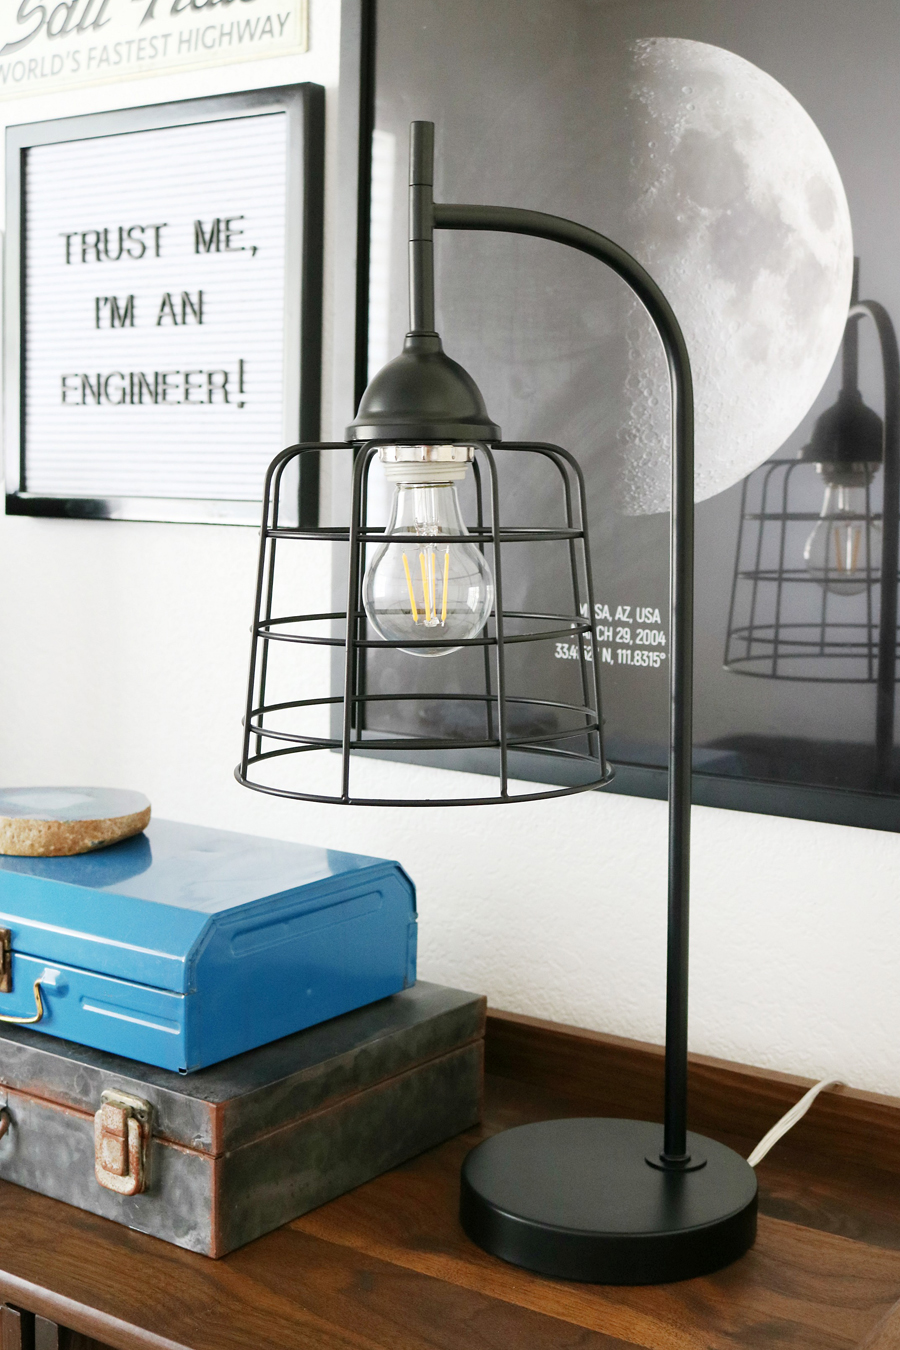 Teen Boy's Room Decor - Vintage Inspired Cage Lamp